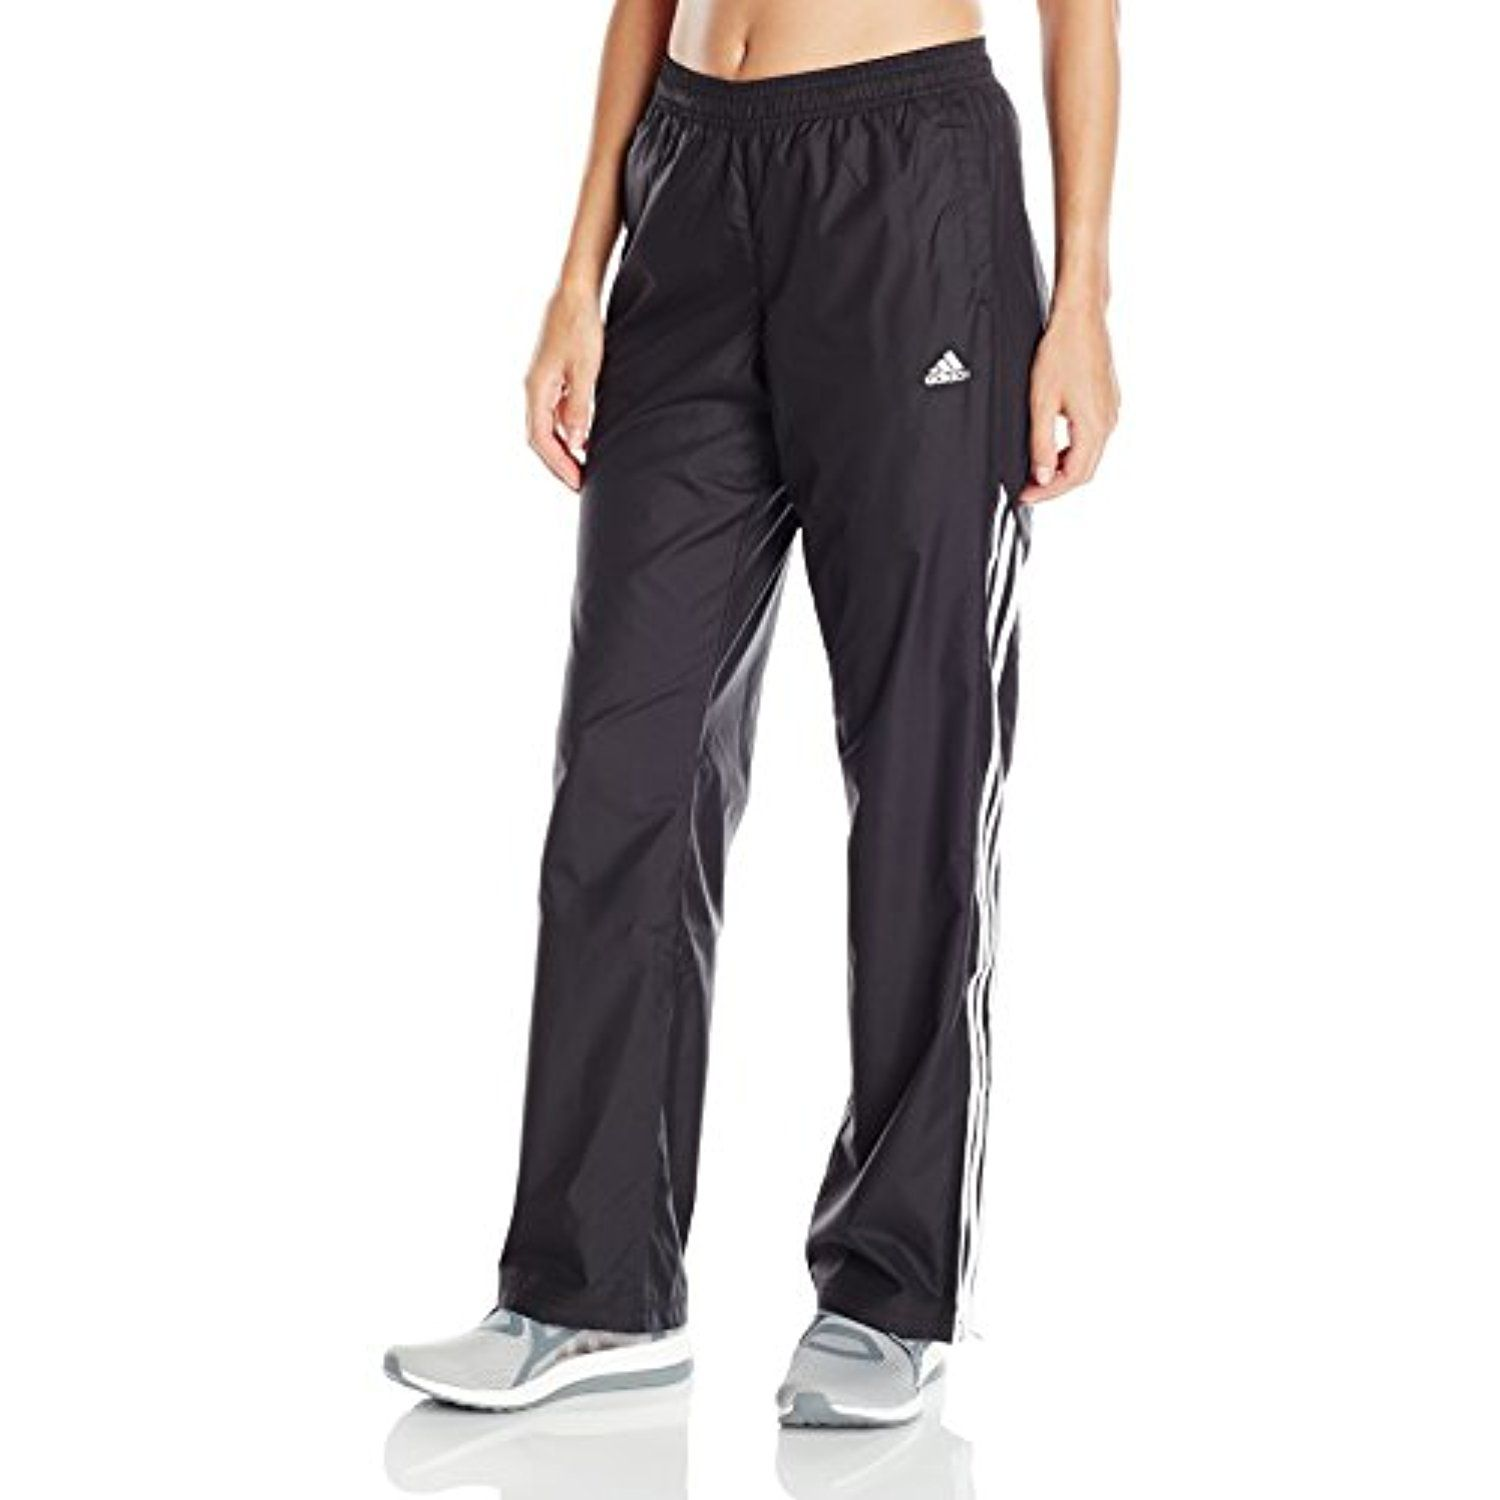 c31ffdb6e9f99 adidas Women's Athletics All Around Woven Pants ** More info could ...